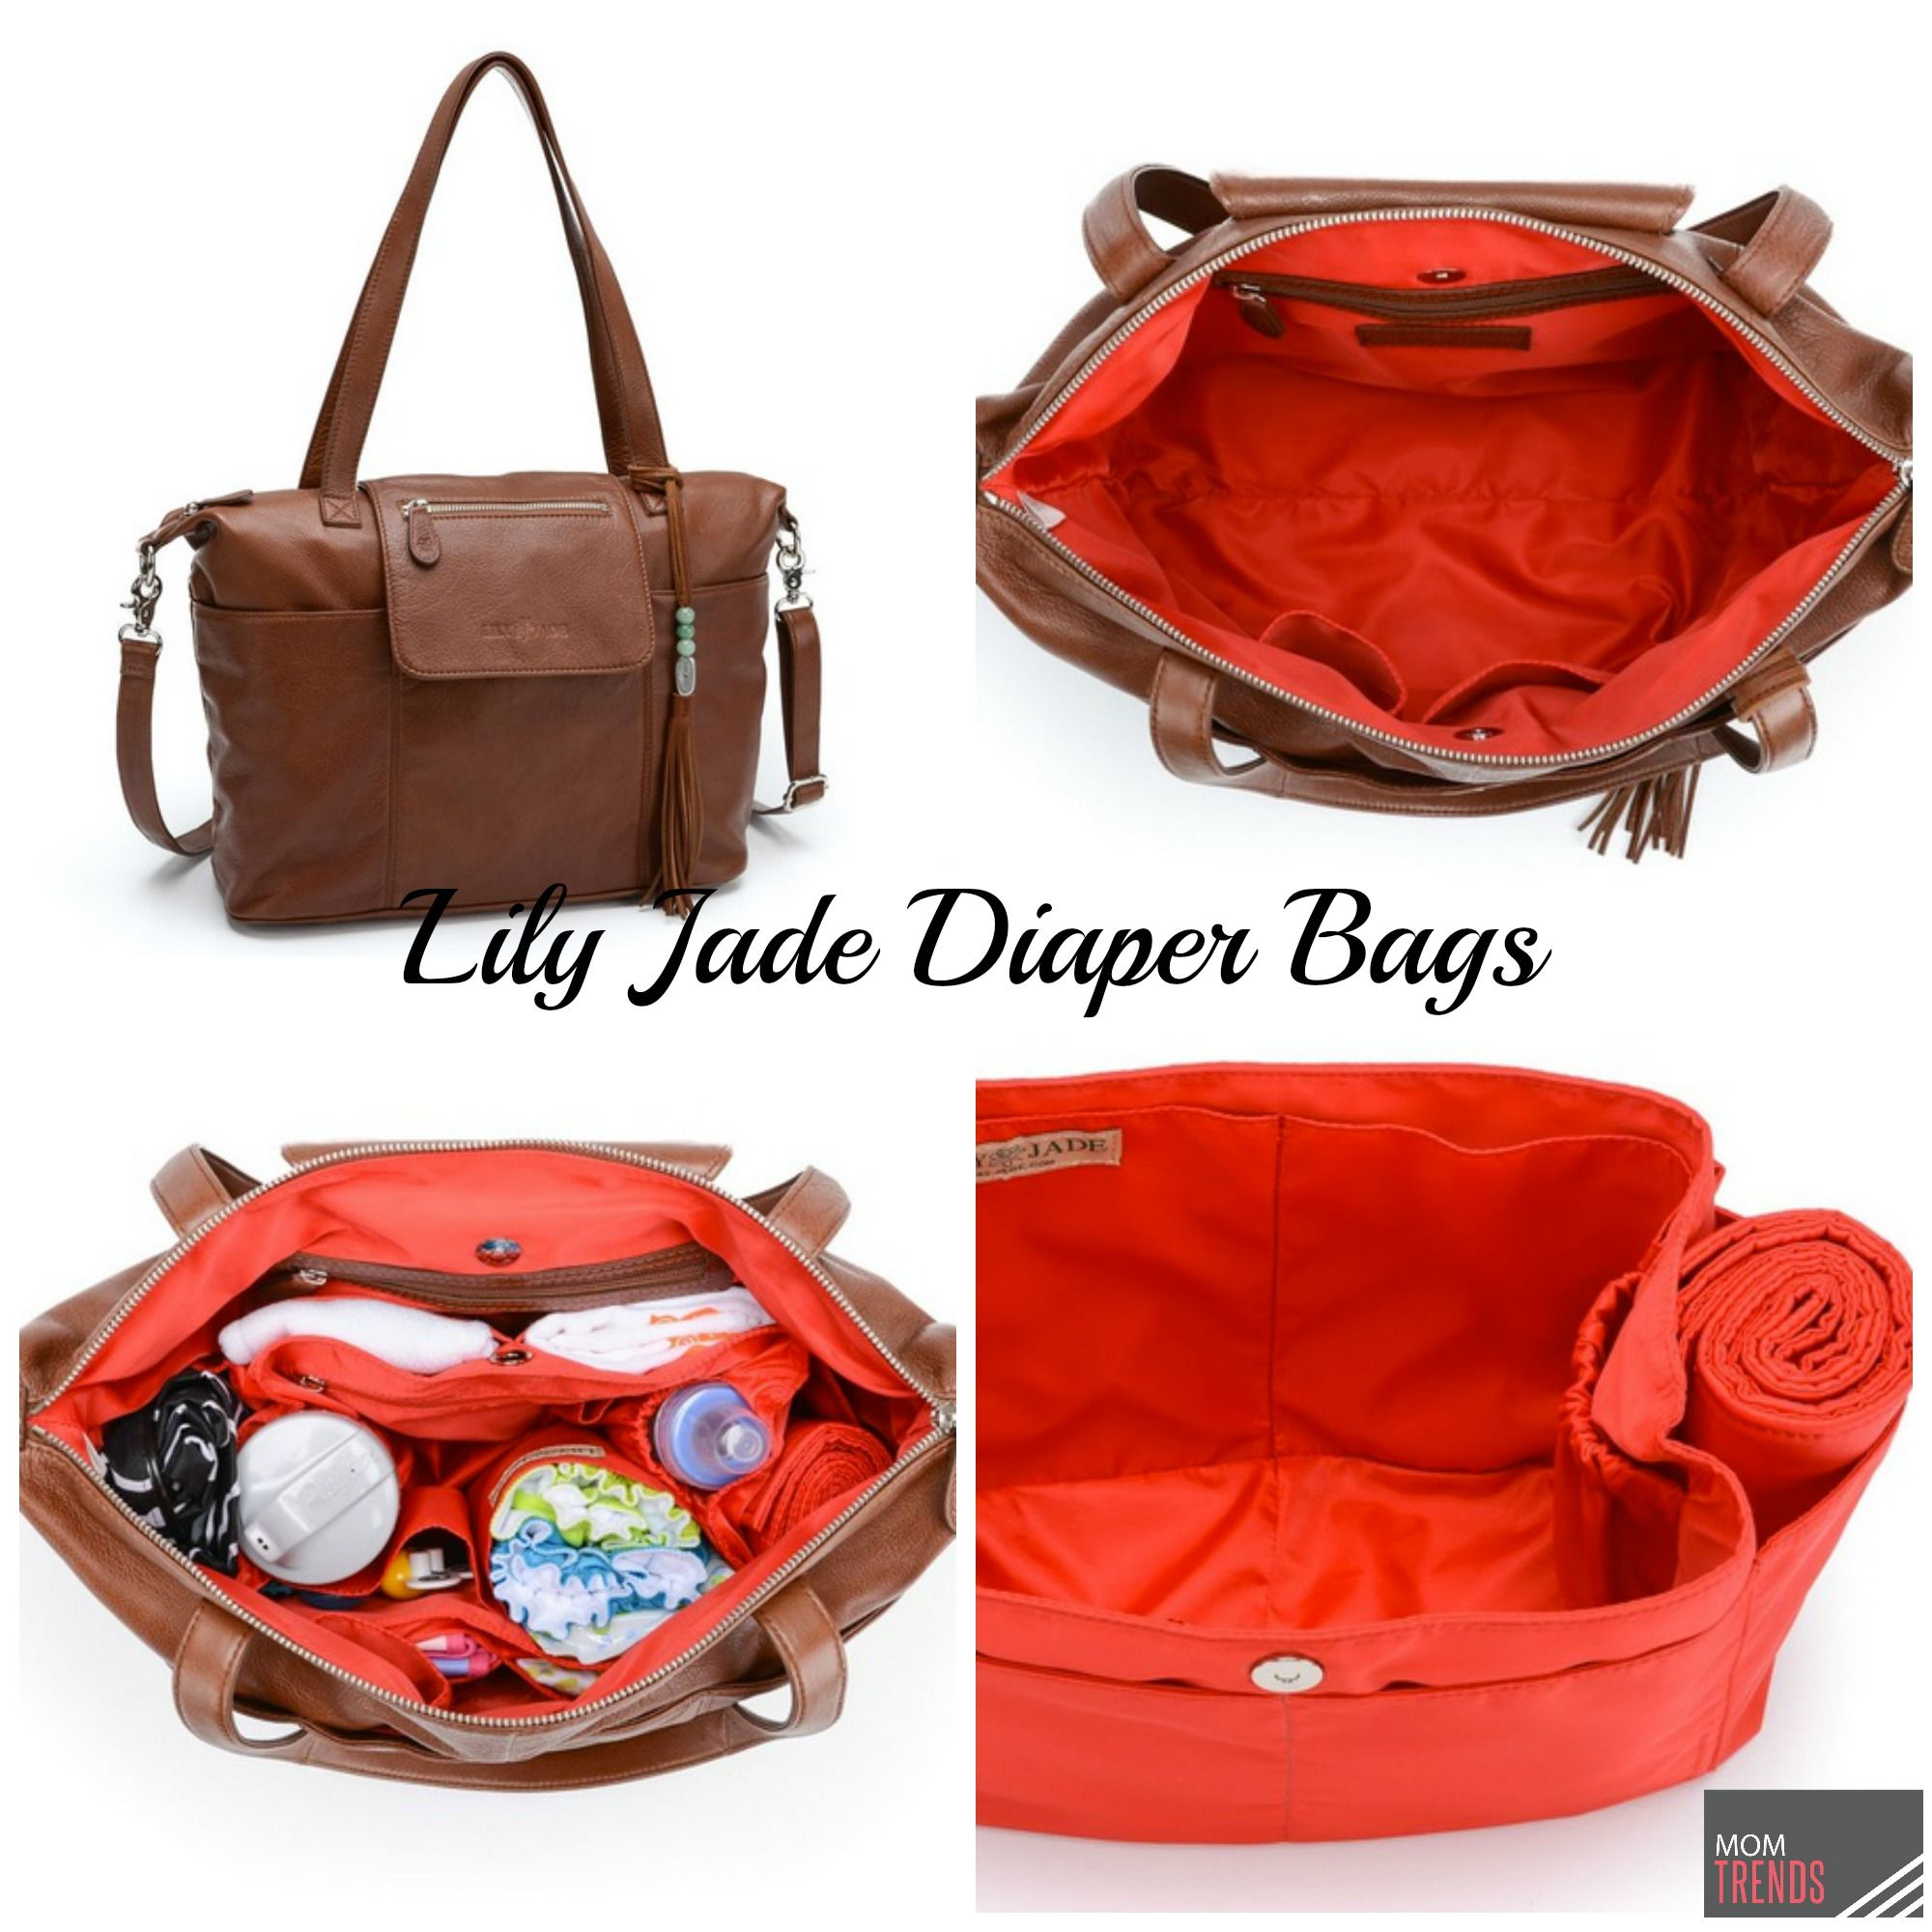 Lily Jade Diaper Bag A Chic Modern Option For Moms